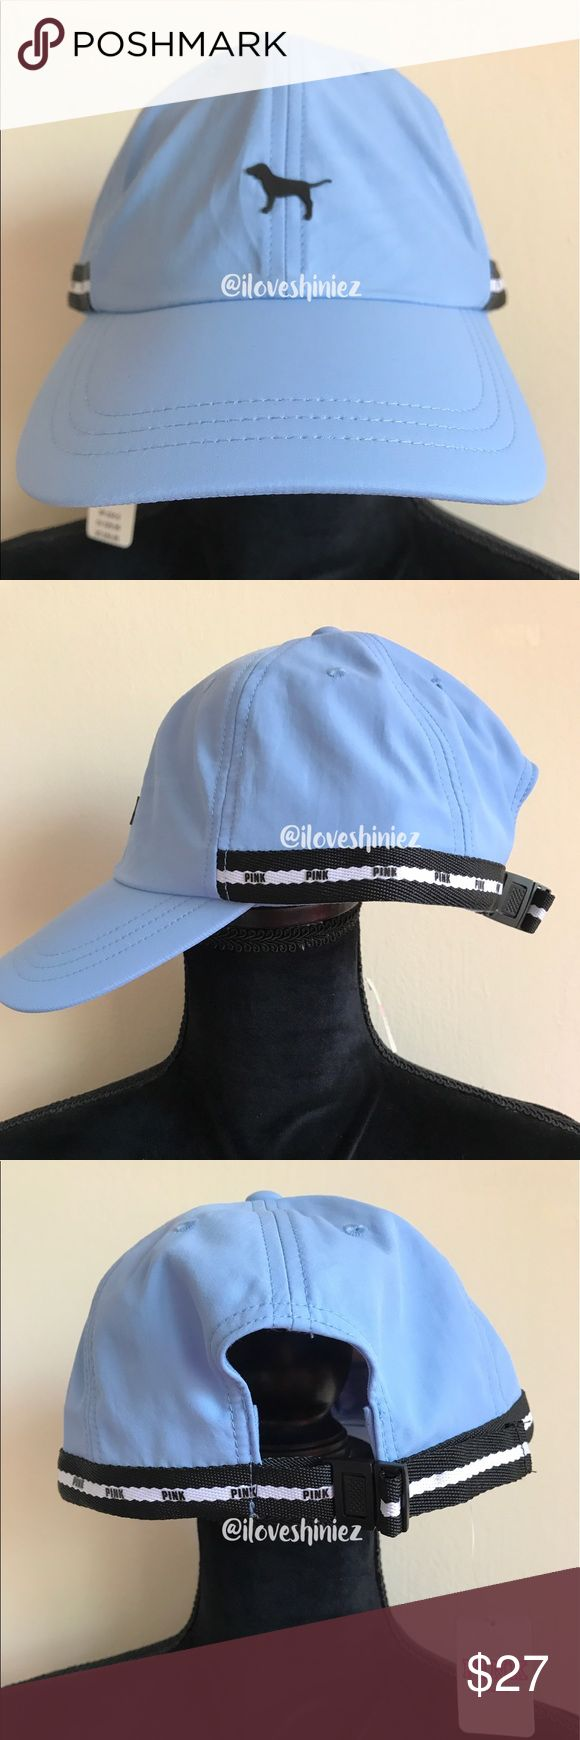 •Victoria's Secret PINK• Baseball Hat •Victoria's Secret PINK•  Baseball hat with adjustable brass colored metal sport clip and strap All star blue color with black embroidered logo and black and white color lock logo accent strap Material: Imported nylon New with tags MSRP $26.95  ✨Please read before commenting✨  ❌No Trades ❌No Holds ❌Prices are Firm but I will evaluate offers up to a 10% off a listed price. Consider every other offer Declined ❌Keep rudeness to yourself  ✨ ILoveShiniez ✨  ✨…